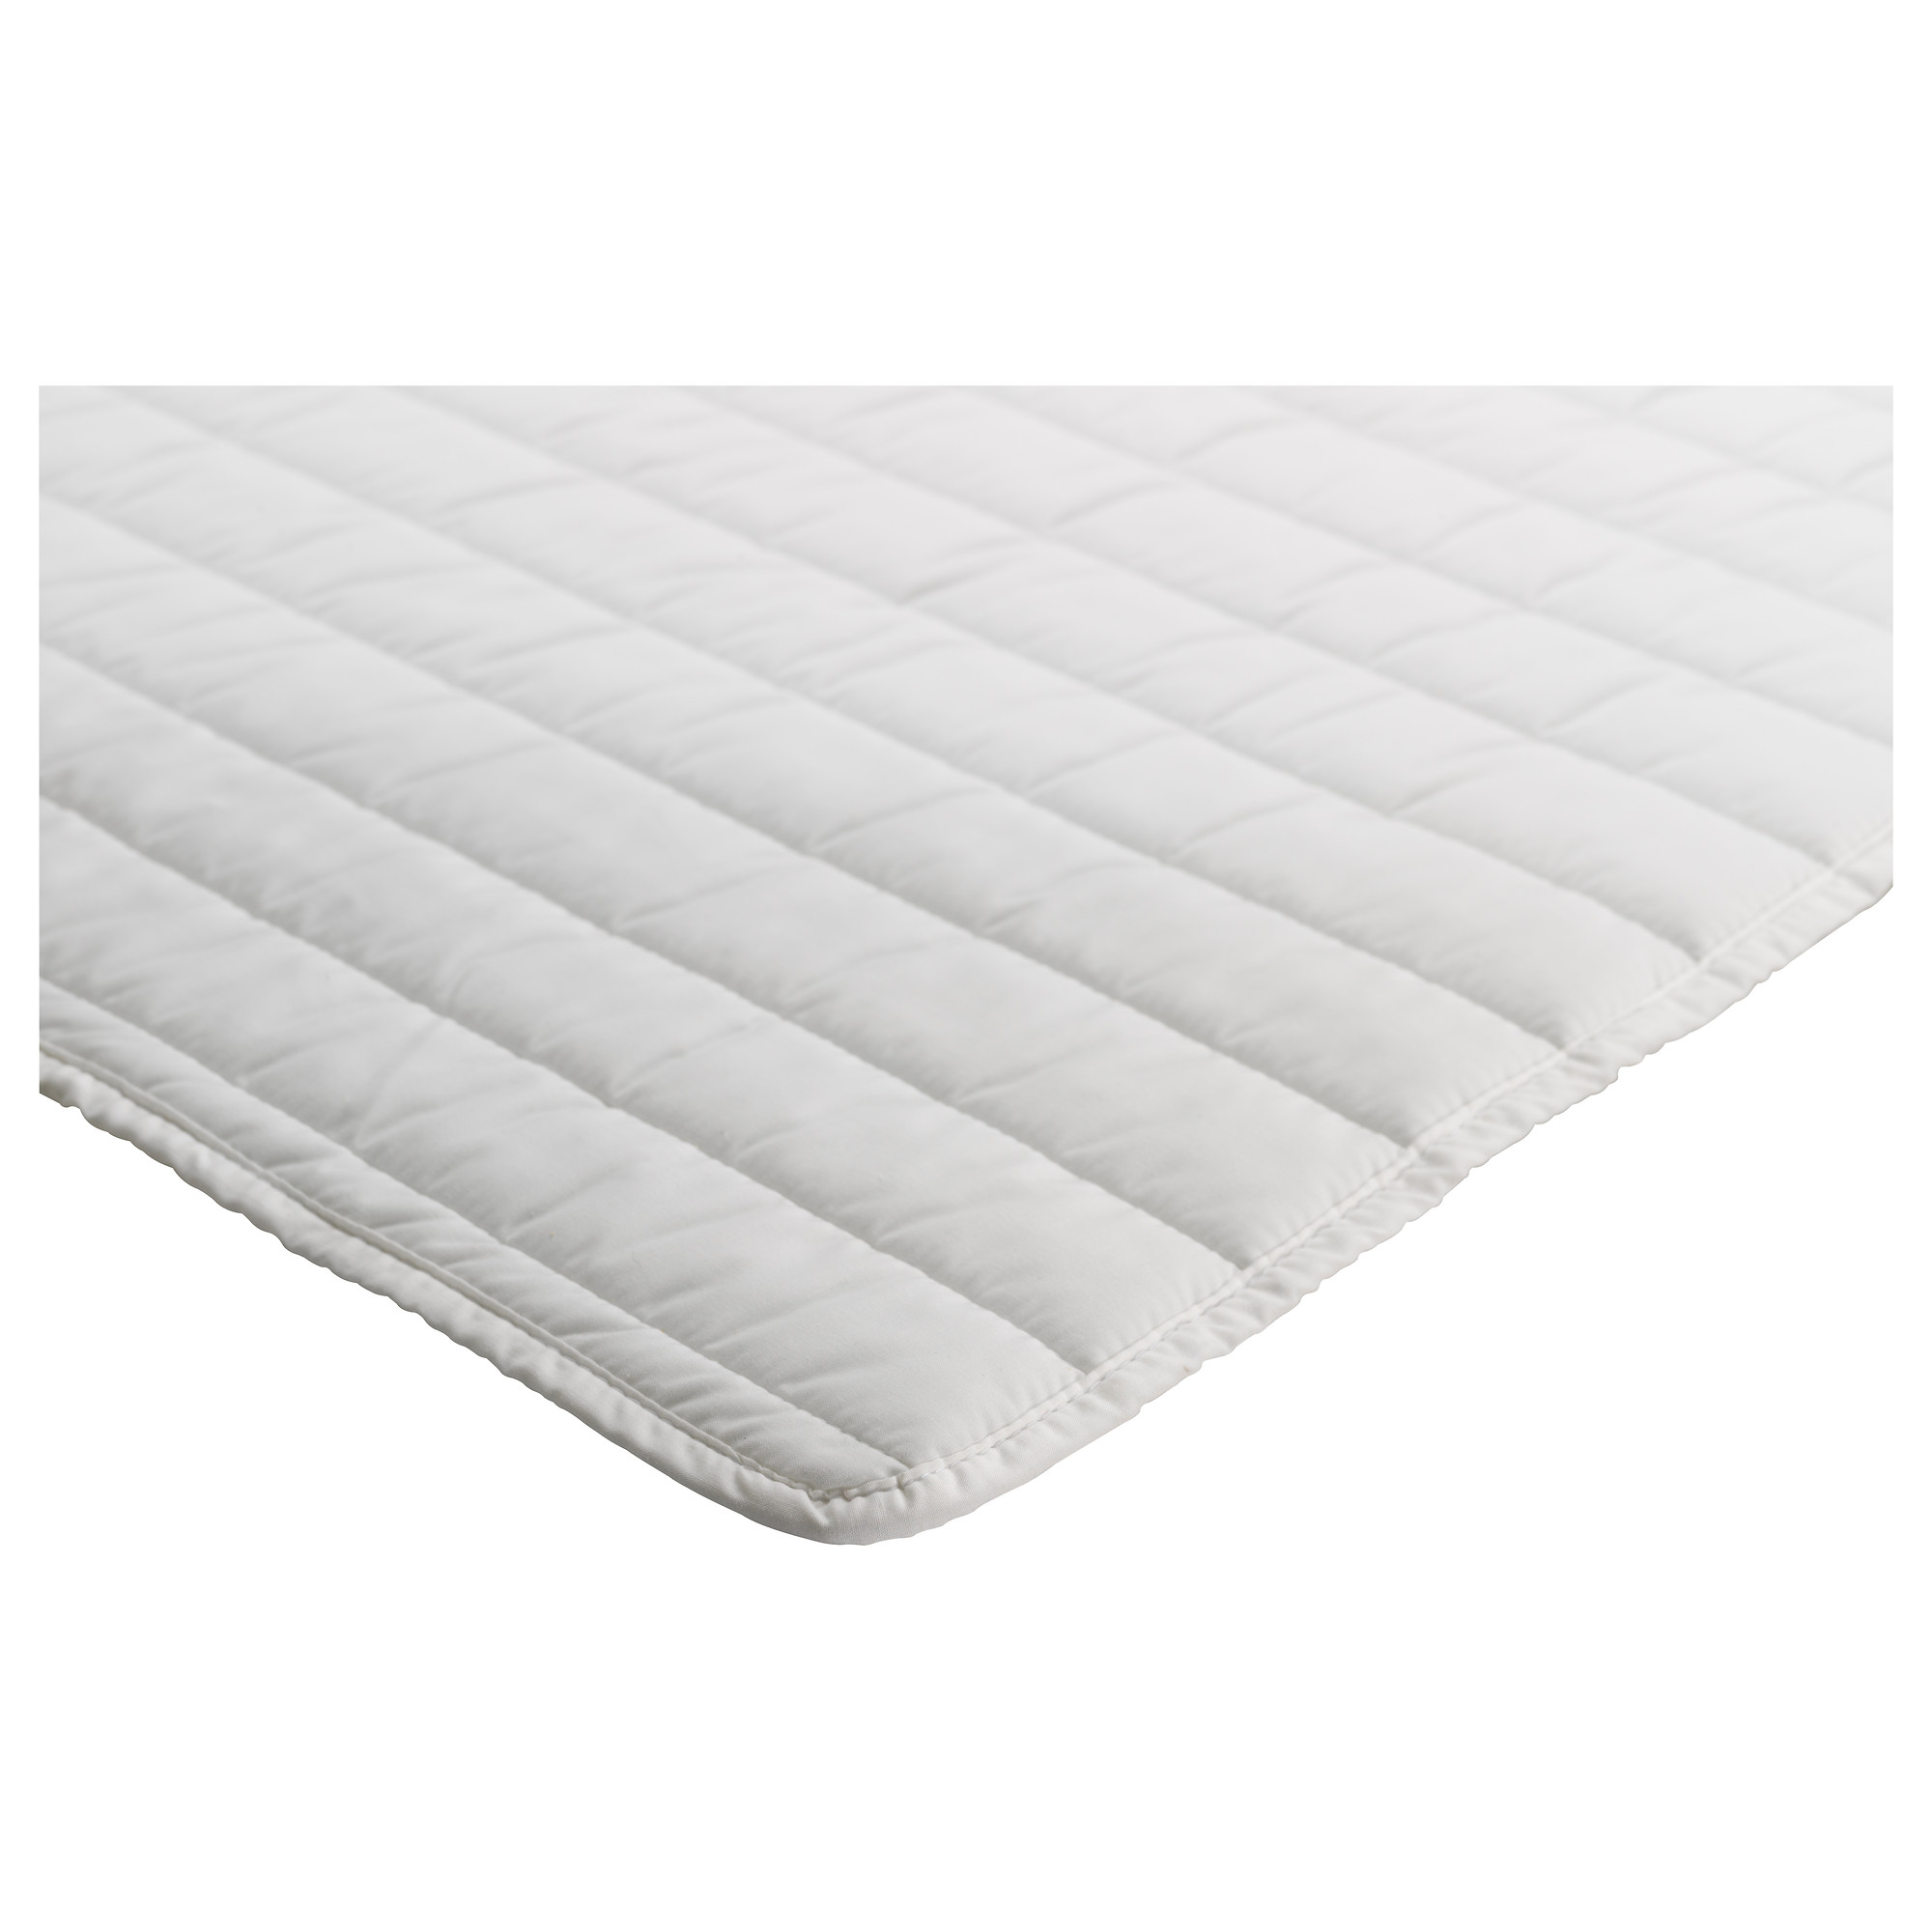 Surmatelas ikea for Ikea plaid polaire blanc